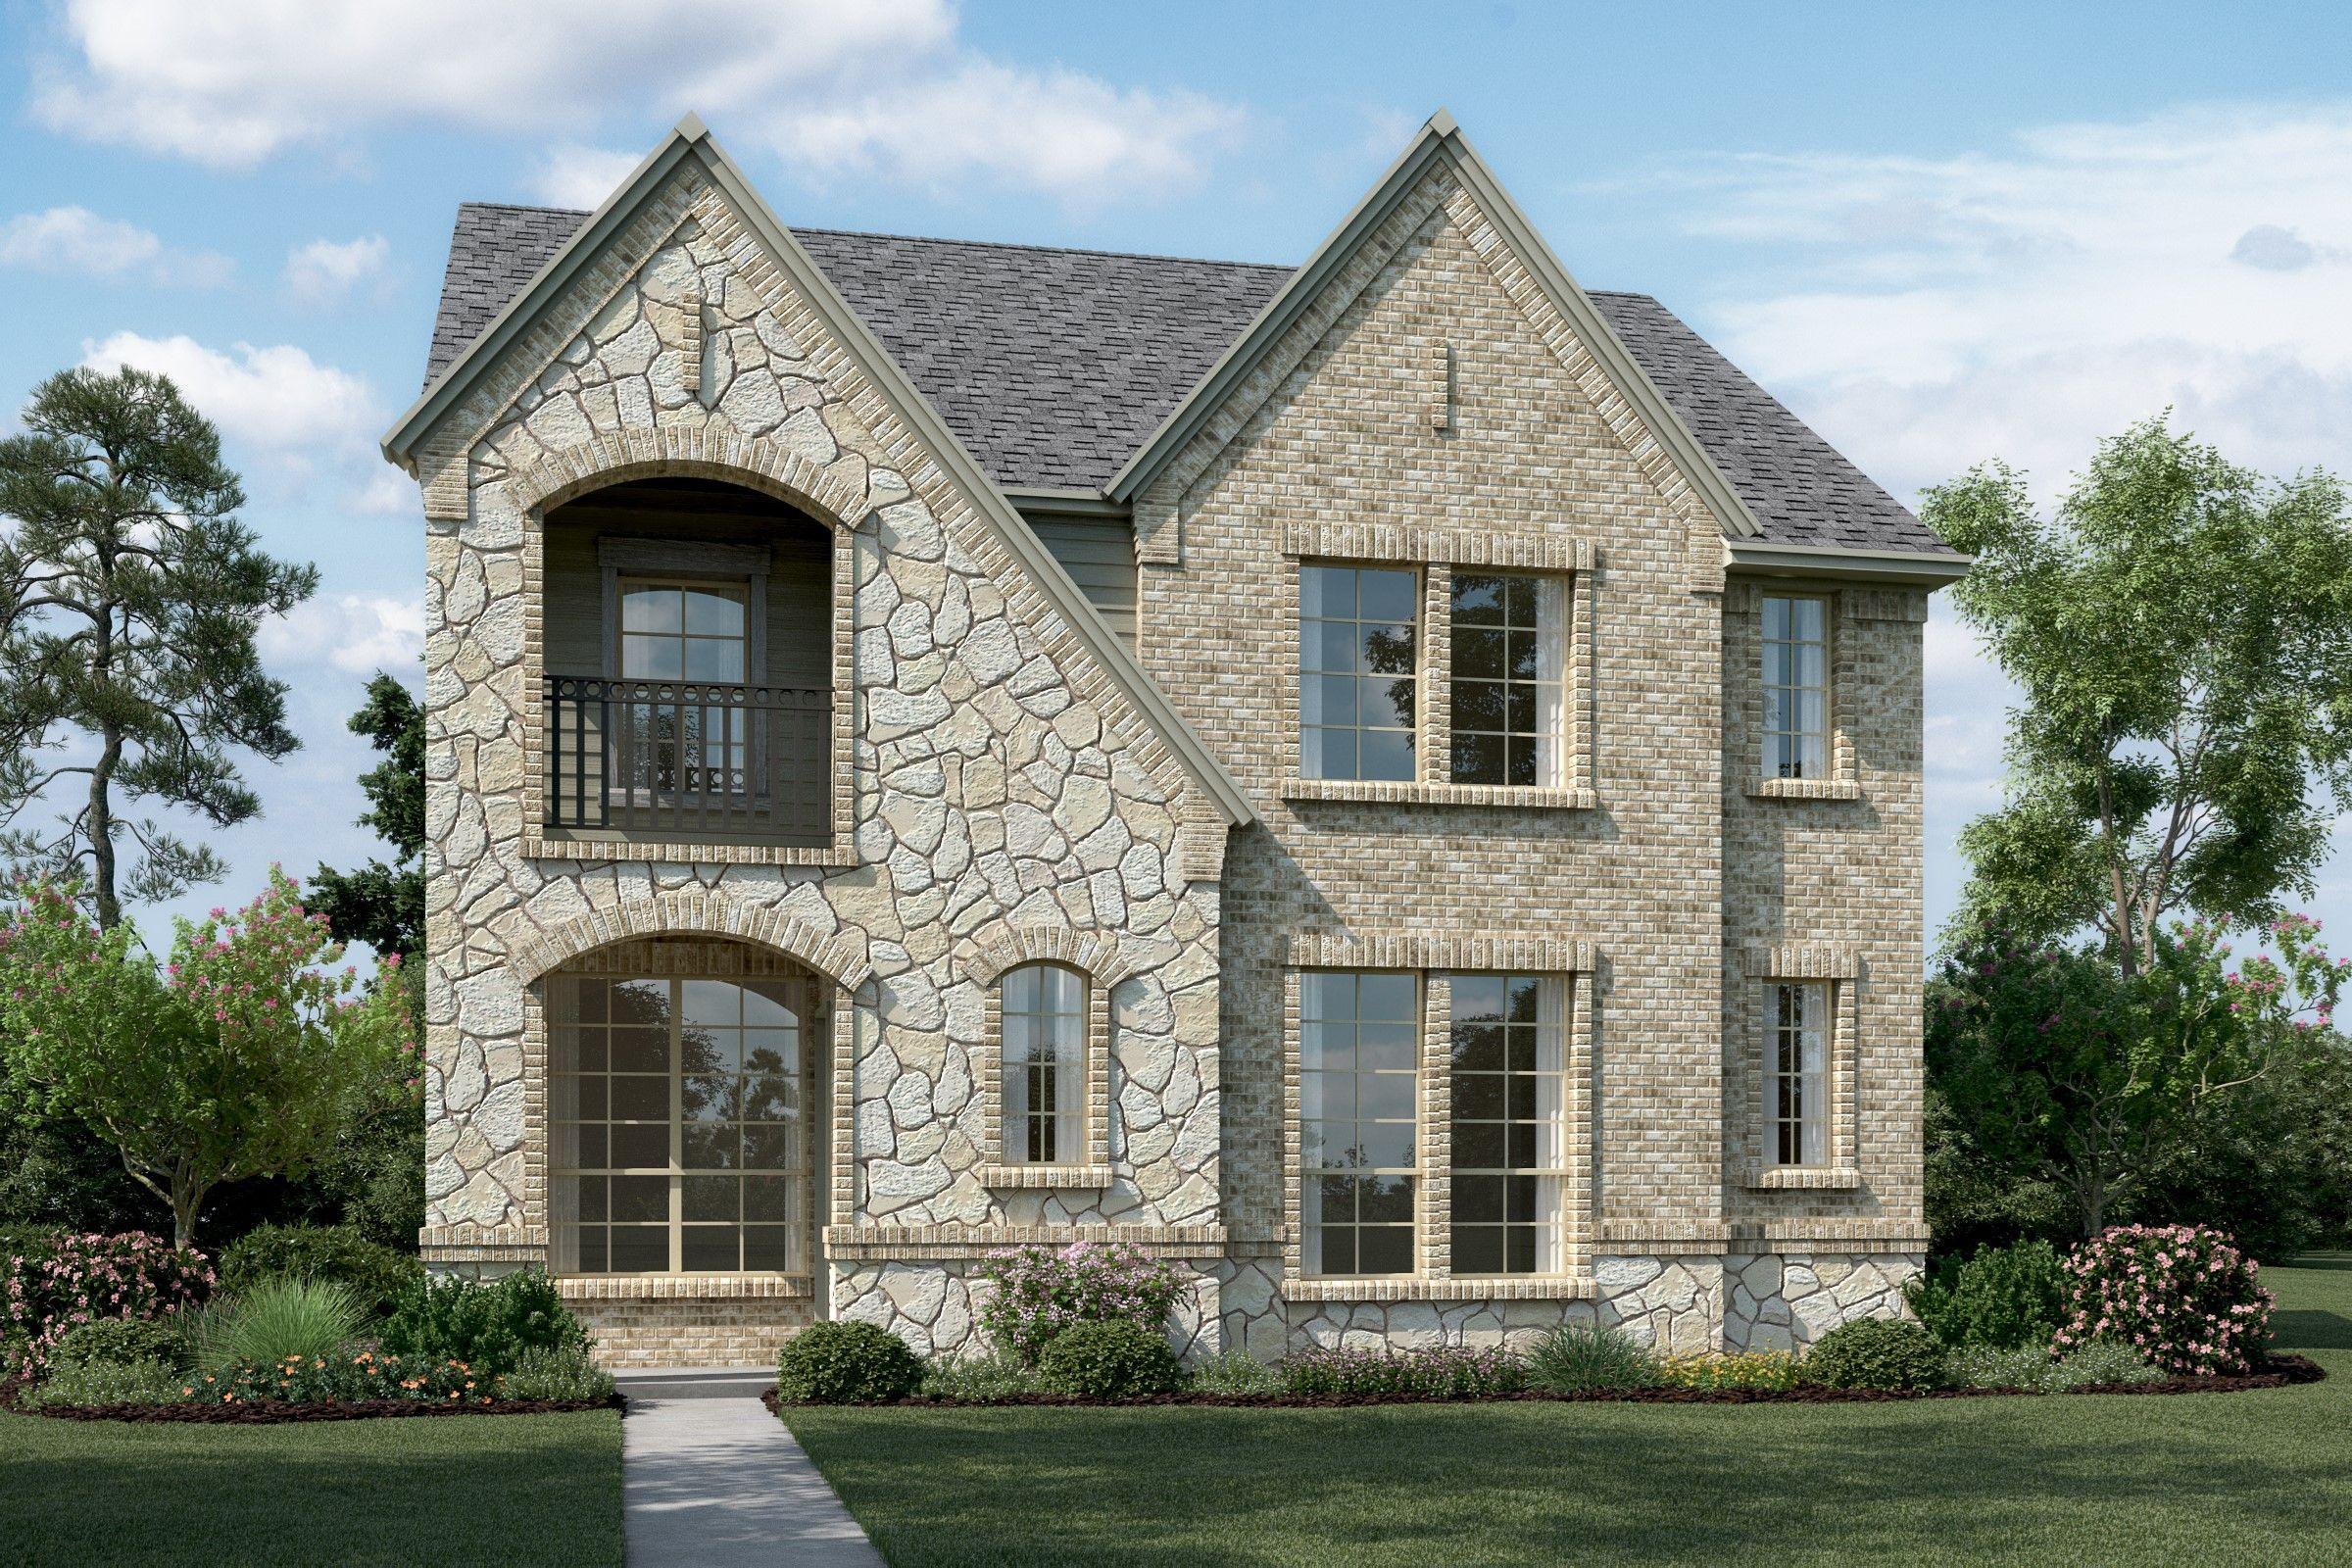 Single Family for Sale at Palisades - Addington Ii 2488 Castle Ridge Drive Richardson, Texas 75080 United States